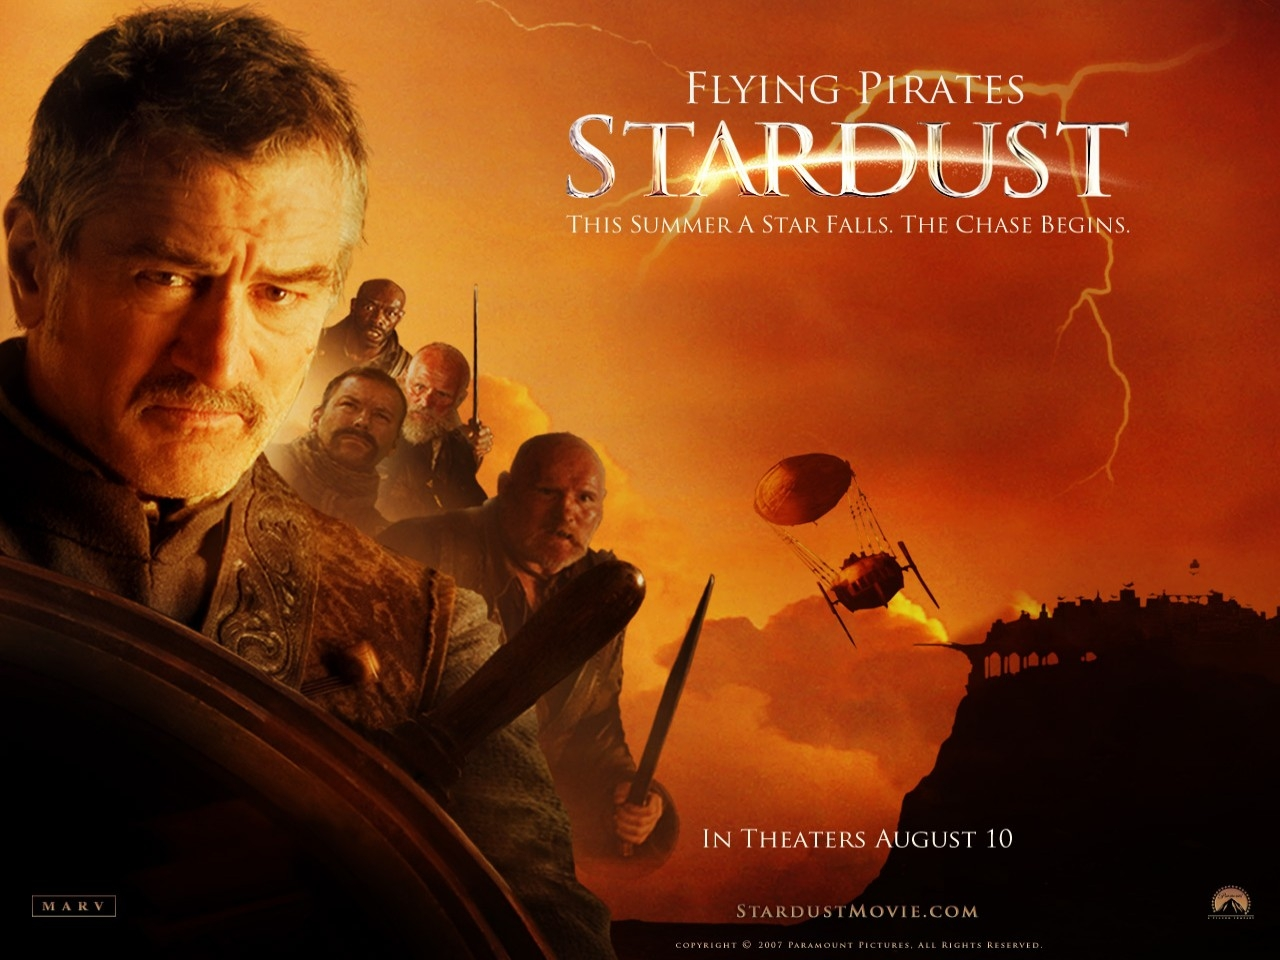 Wallpaper del film Stardust con Robert De Niro